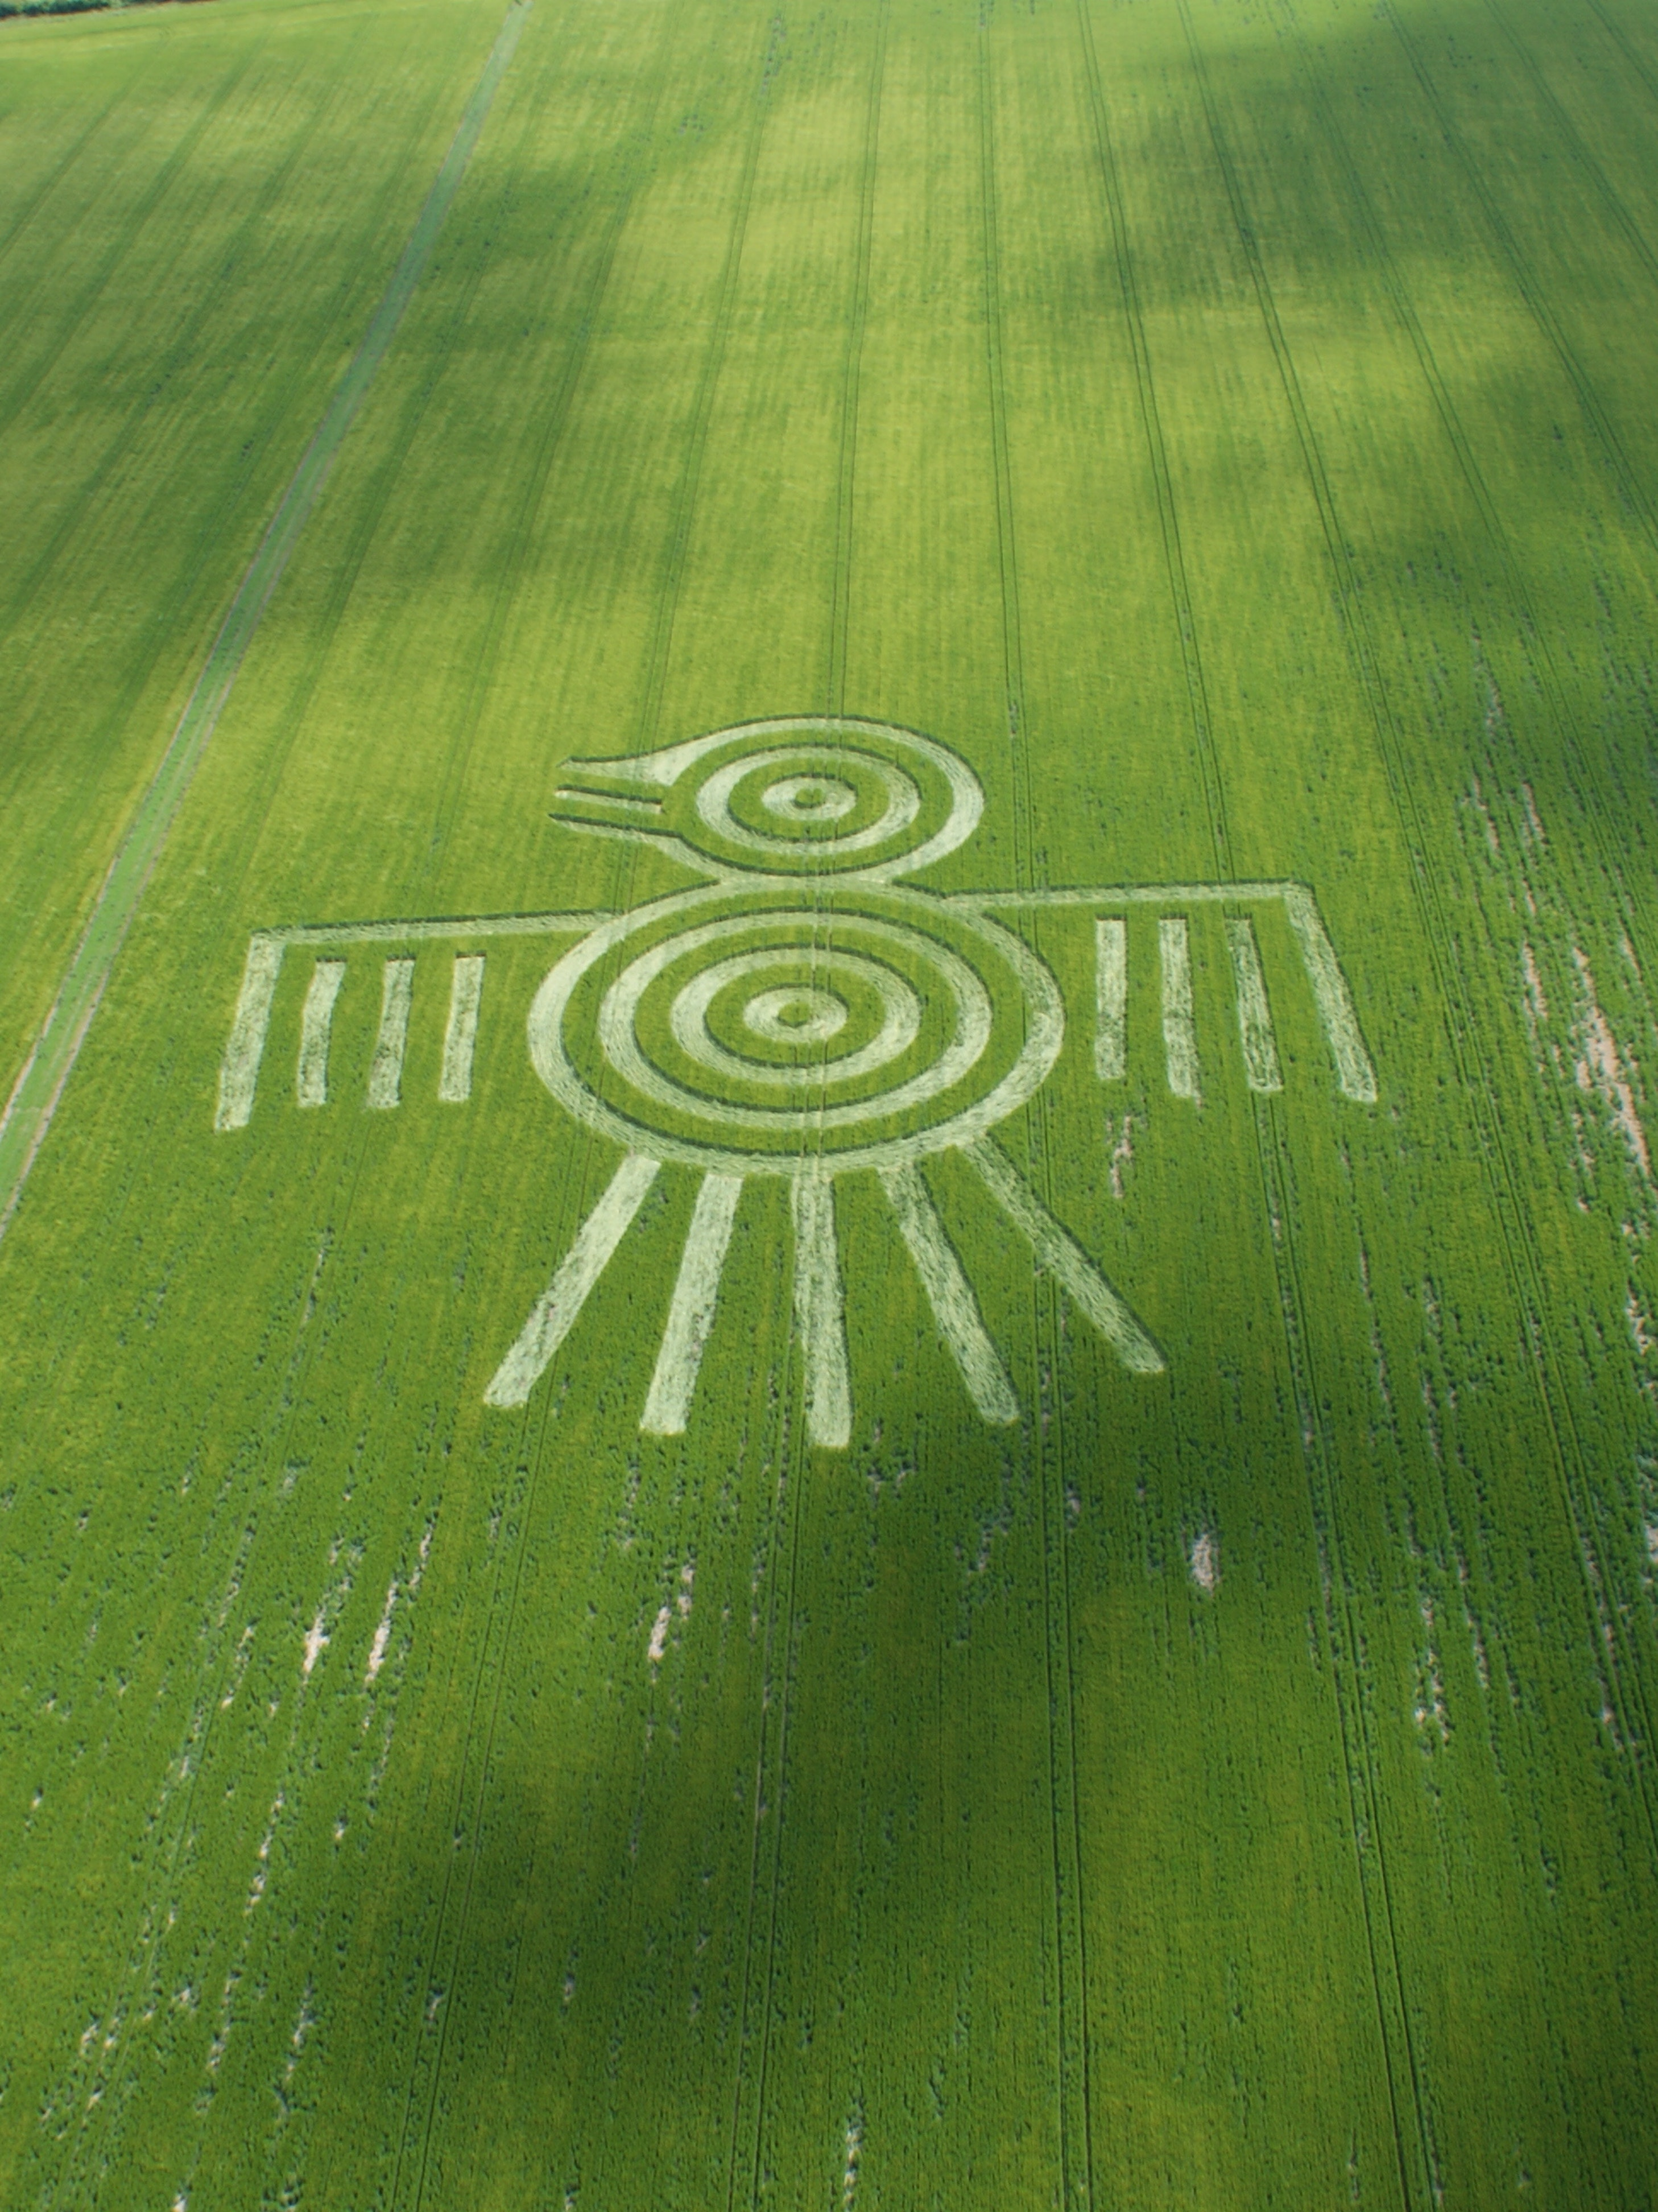 The Science of crop circle research is like a crime scene investigation